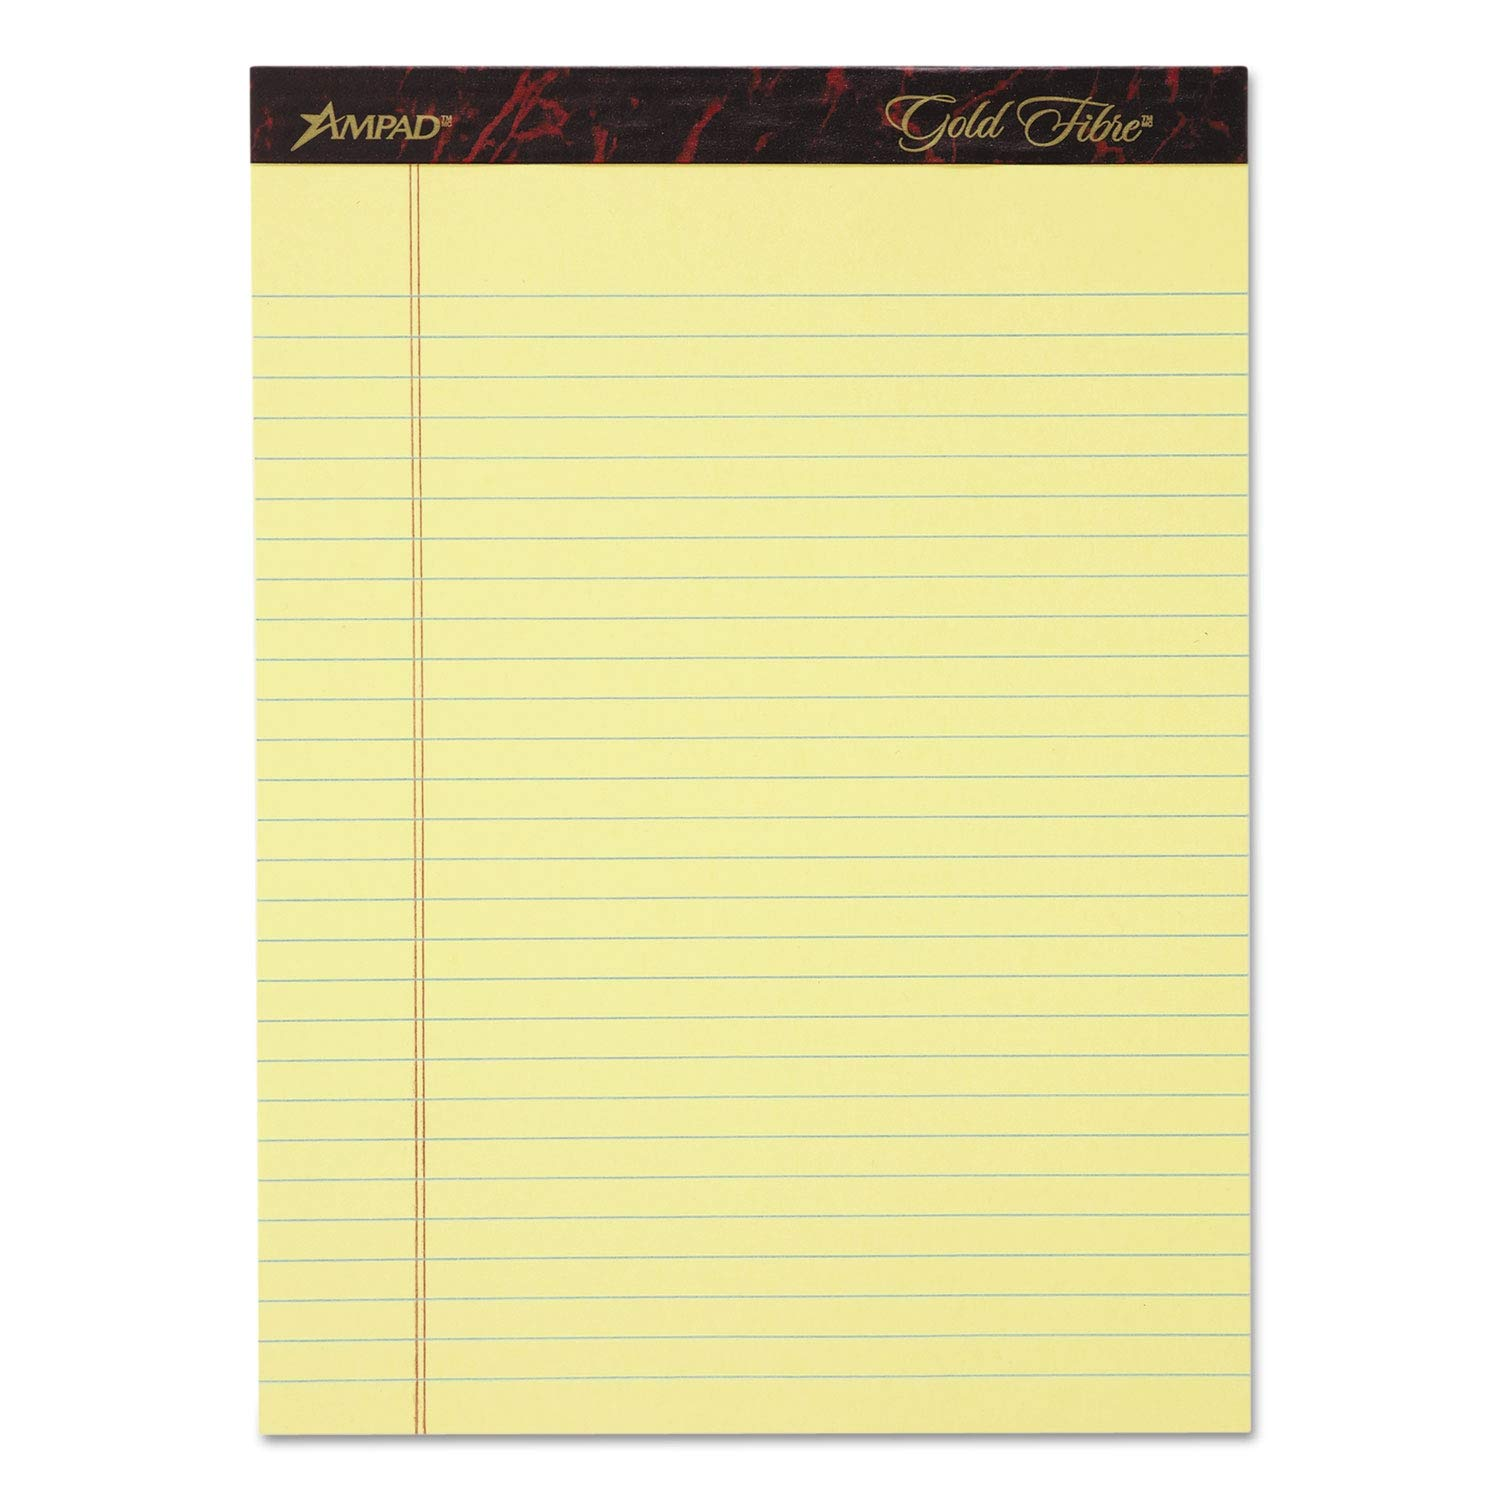 Ampad Gold Fibre Writing Pads, Legal/Wide, 8 1/2 x 11 3/4, Canary, 50 Sheets, 4/Pack - 20-032 (Pack of 2)